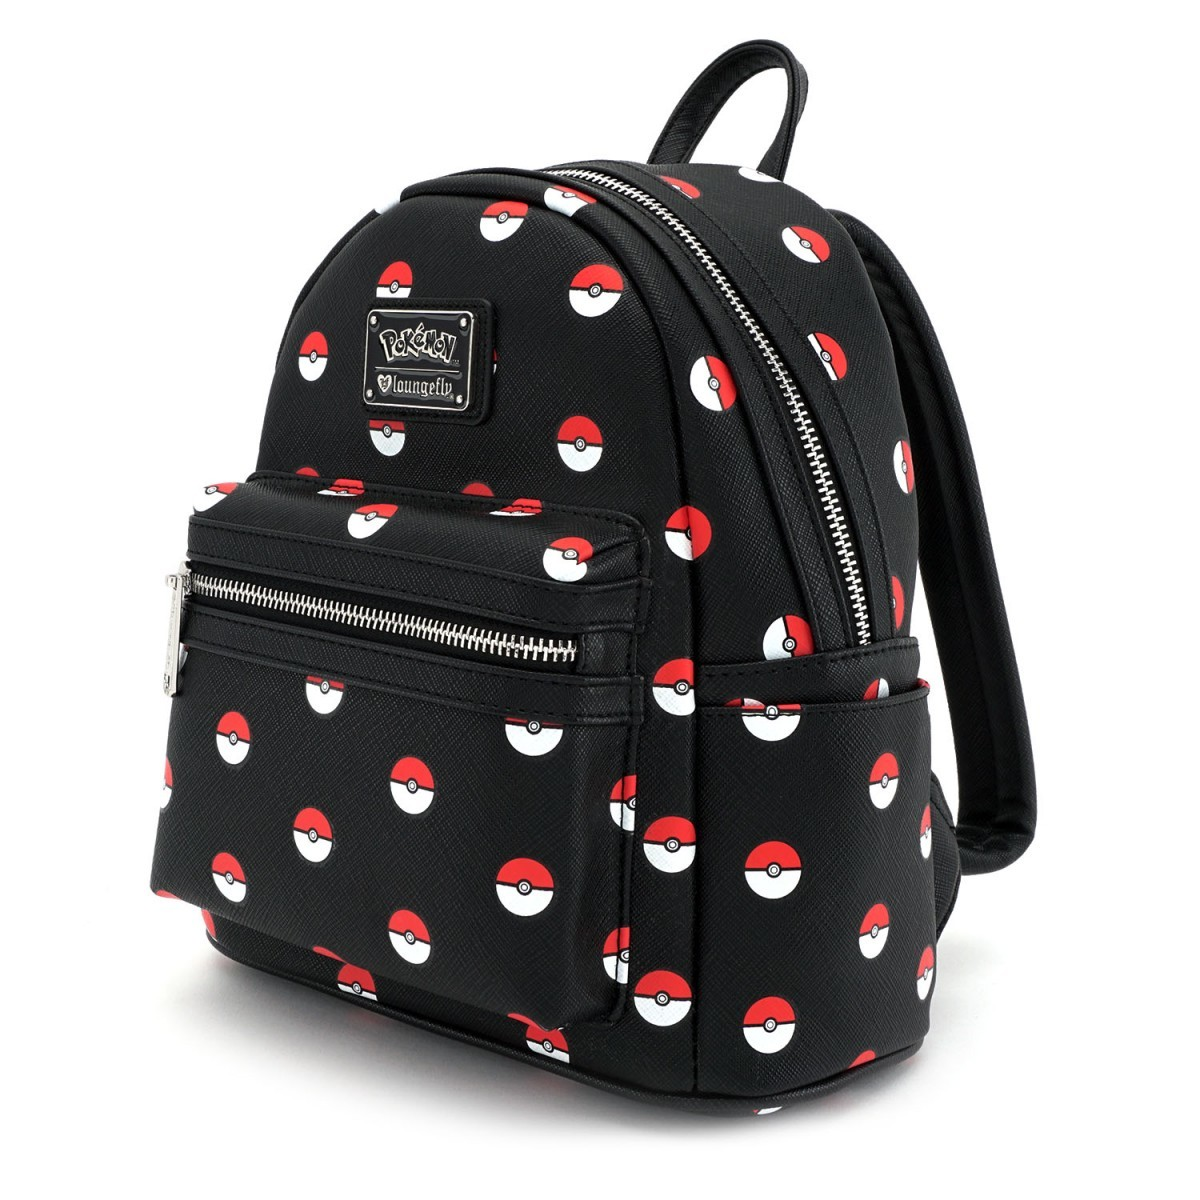 Loungefly Pokemon Pokeball Print Mini Backpack image